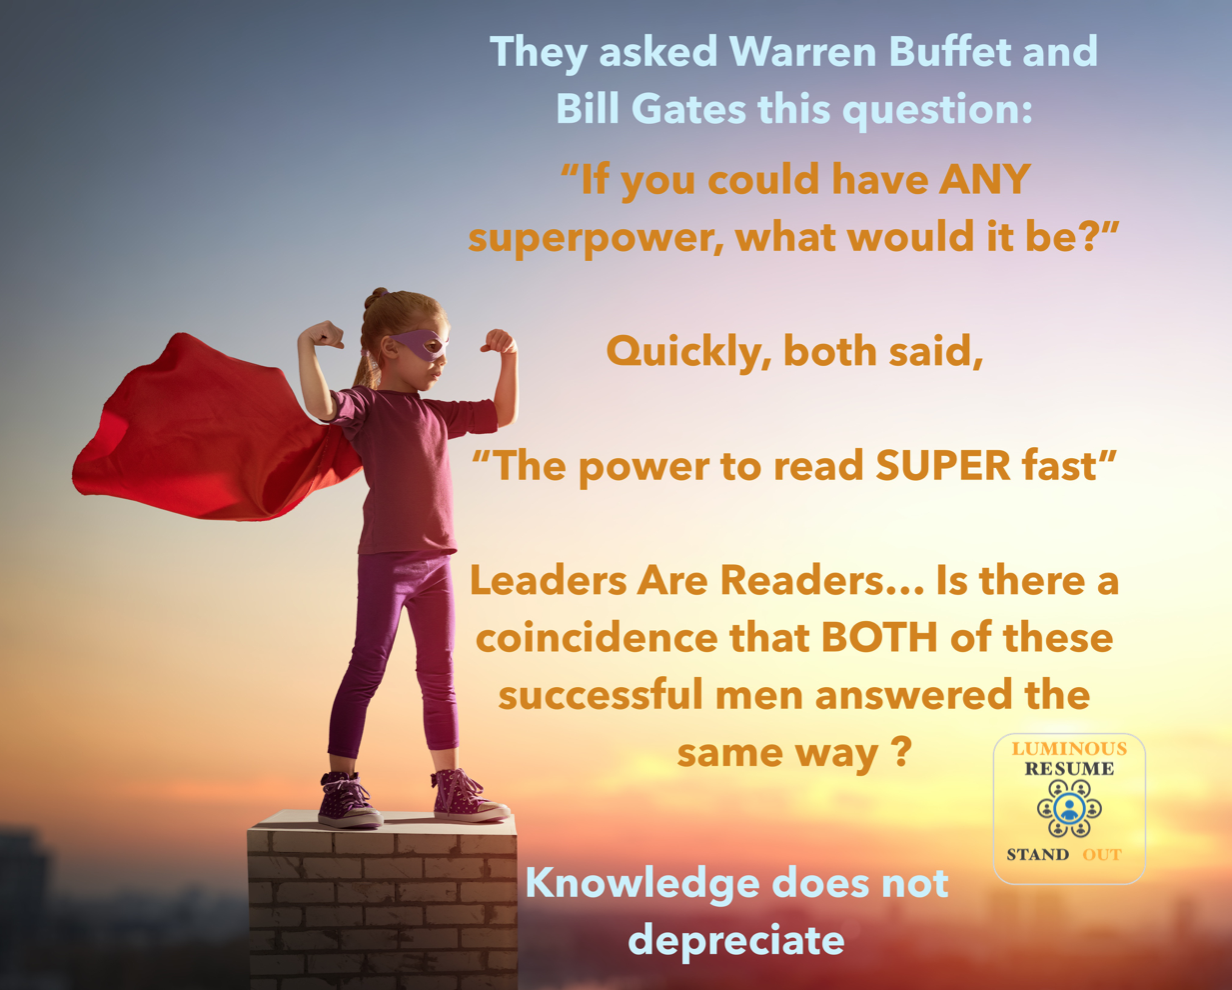 What Do You Think Bill Gates Would Choose If He Got ONE Superpower? His  Answer  Bill Gates Resume